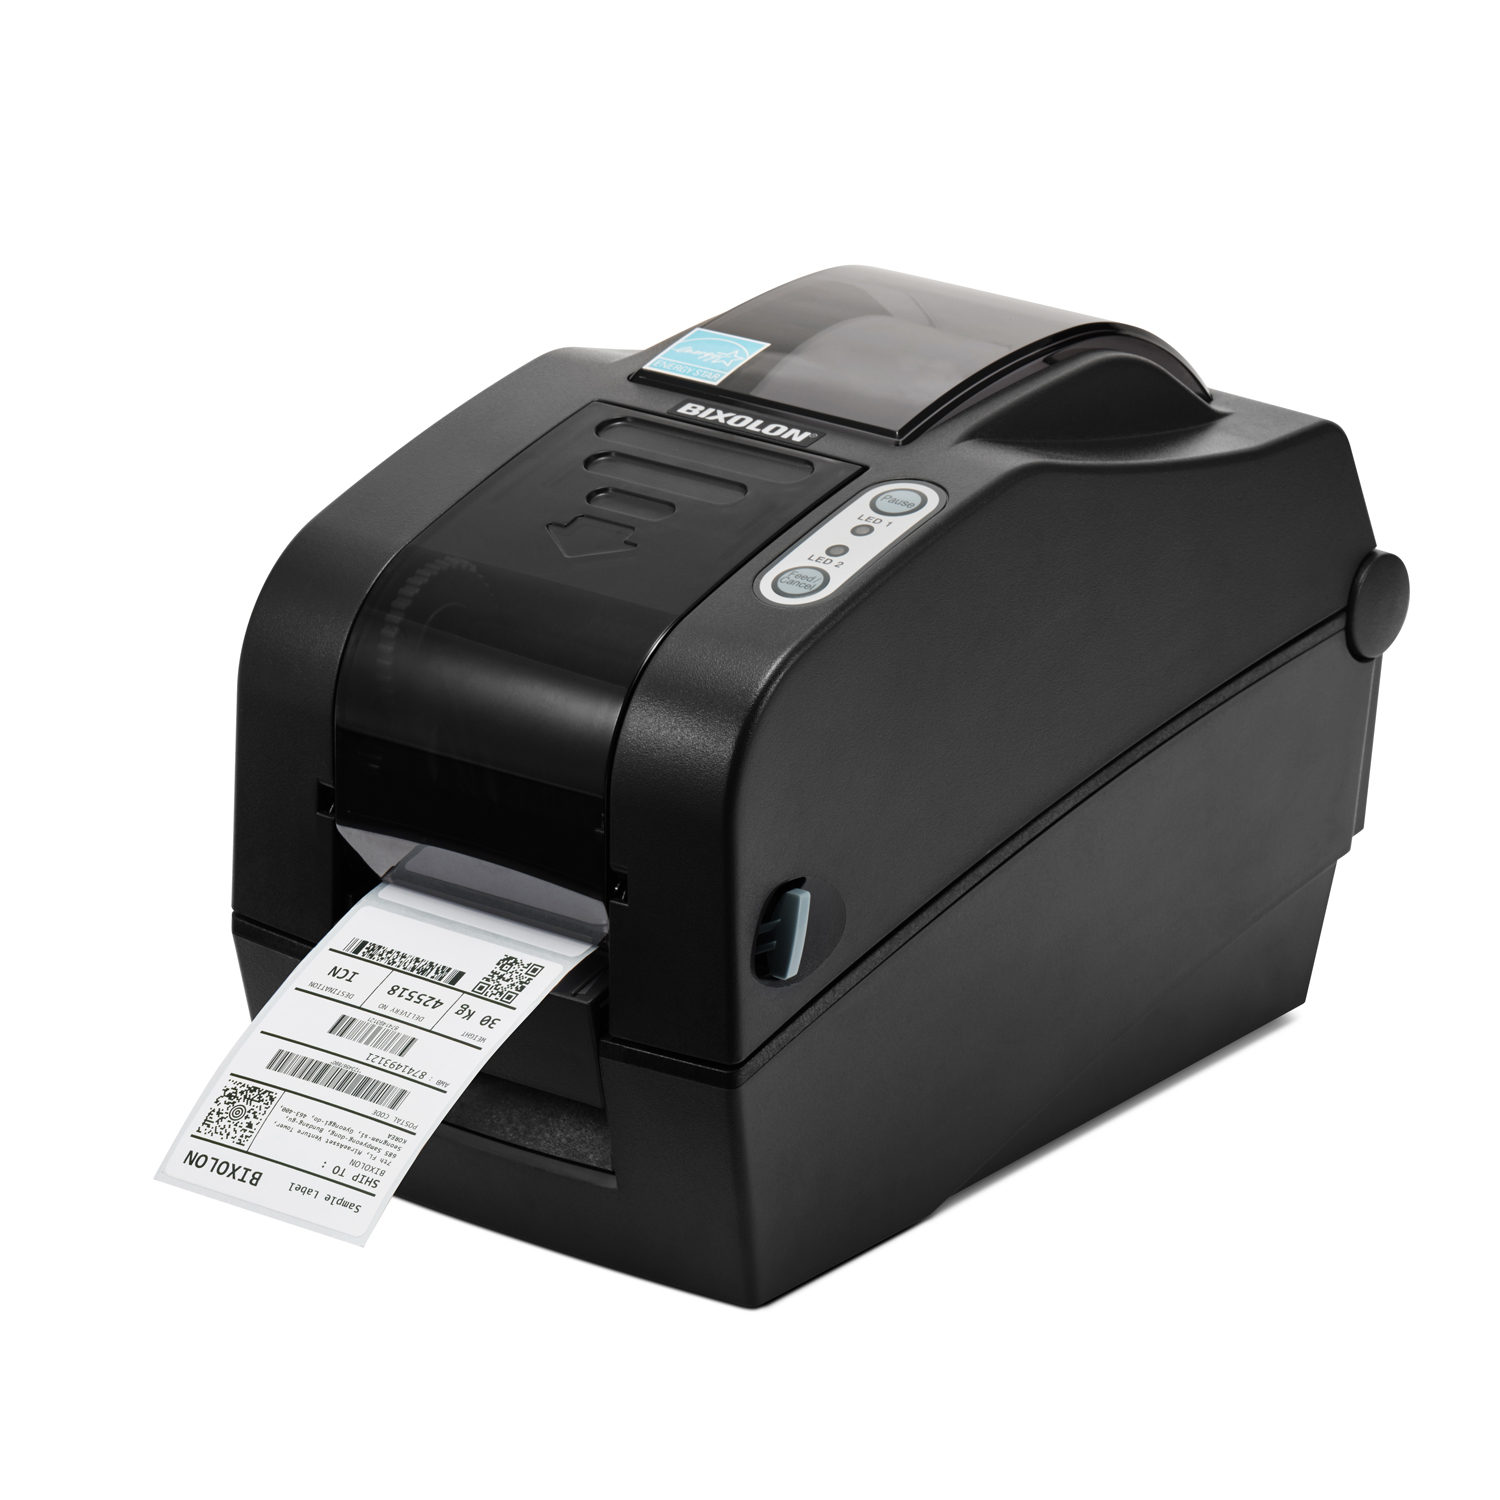 BIXOLON SLP-TX220G THERMAL TRANSFER 203 X 203DPI LABEL PRINTER